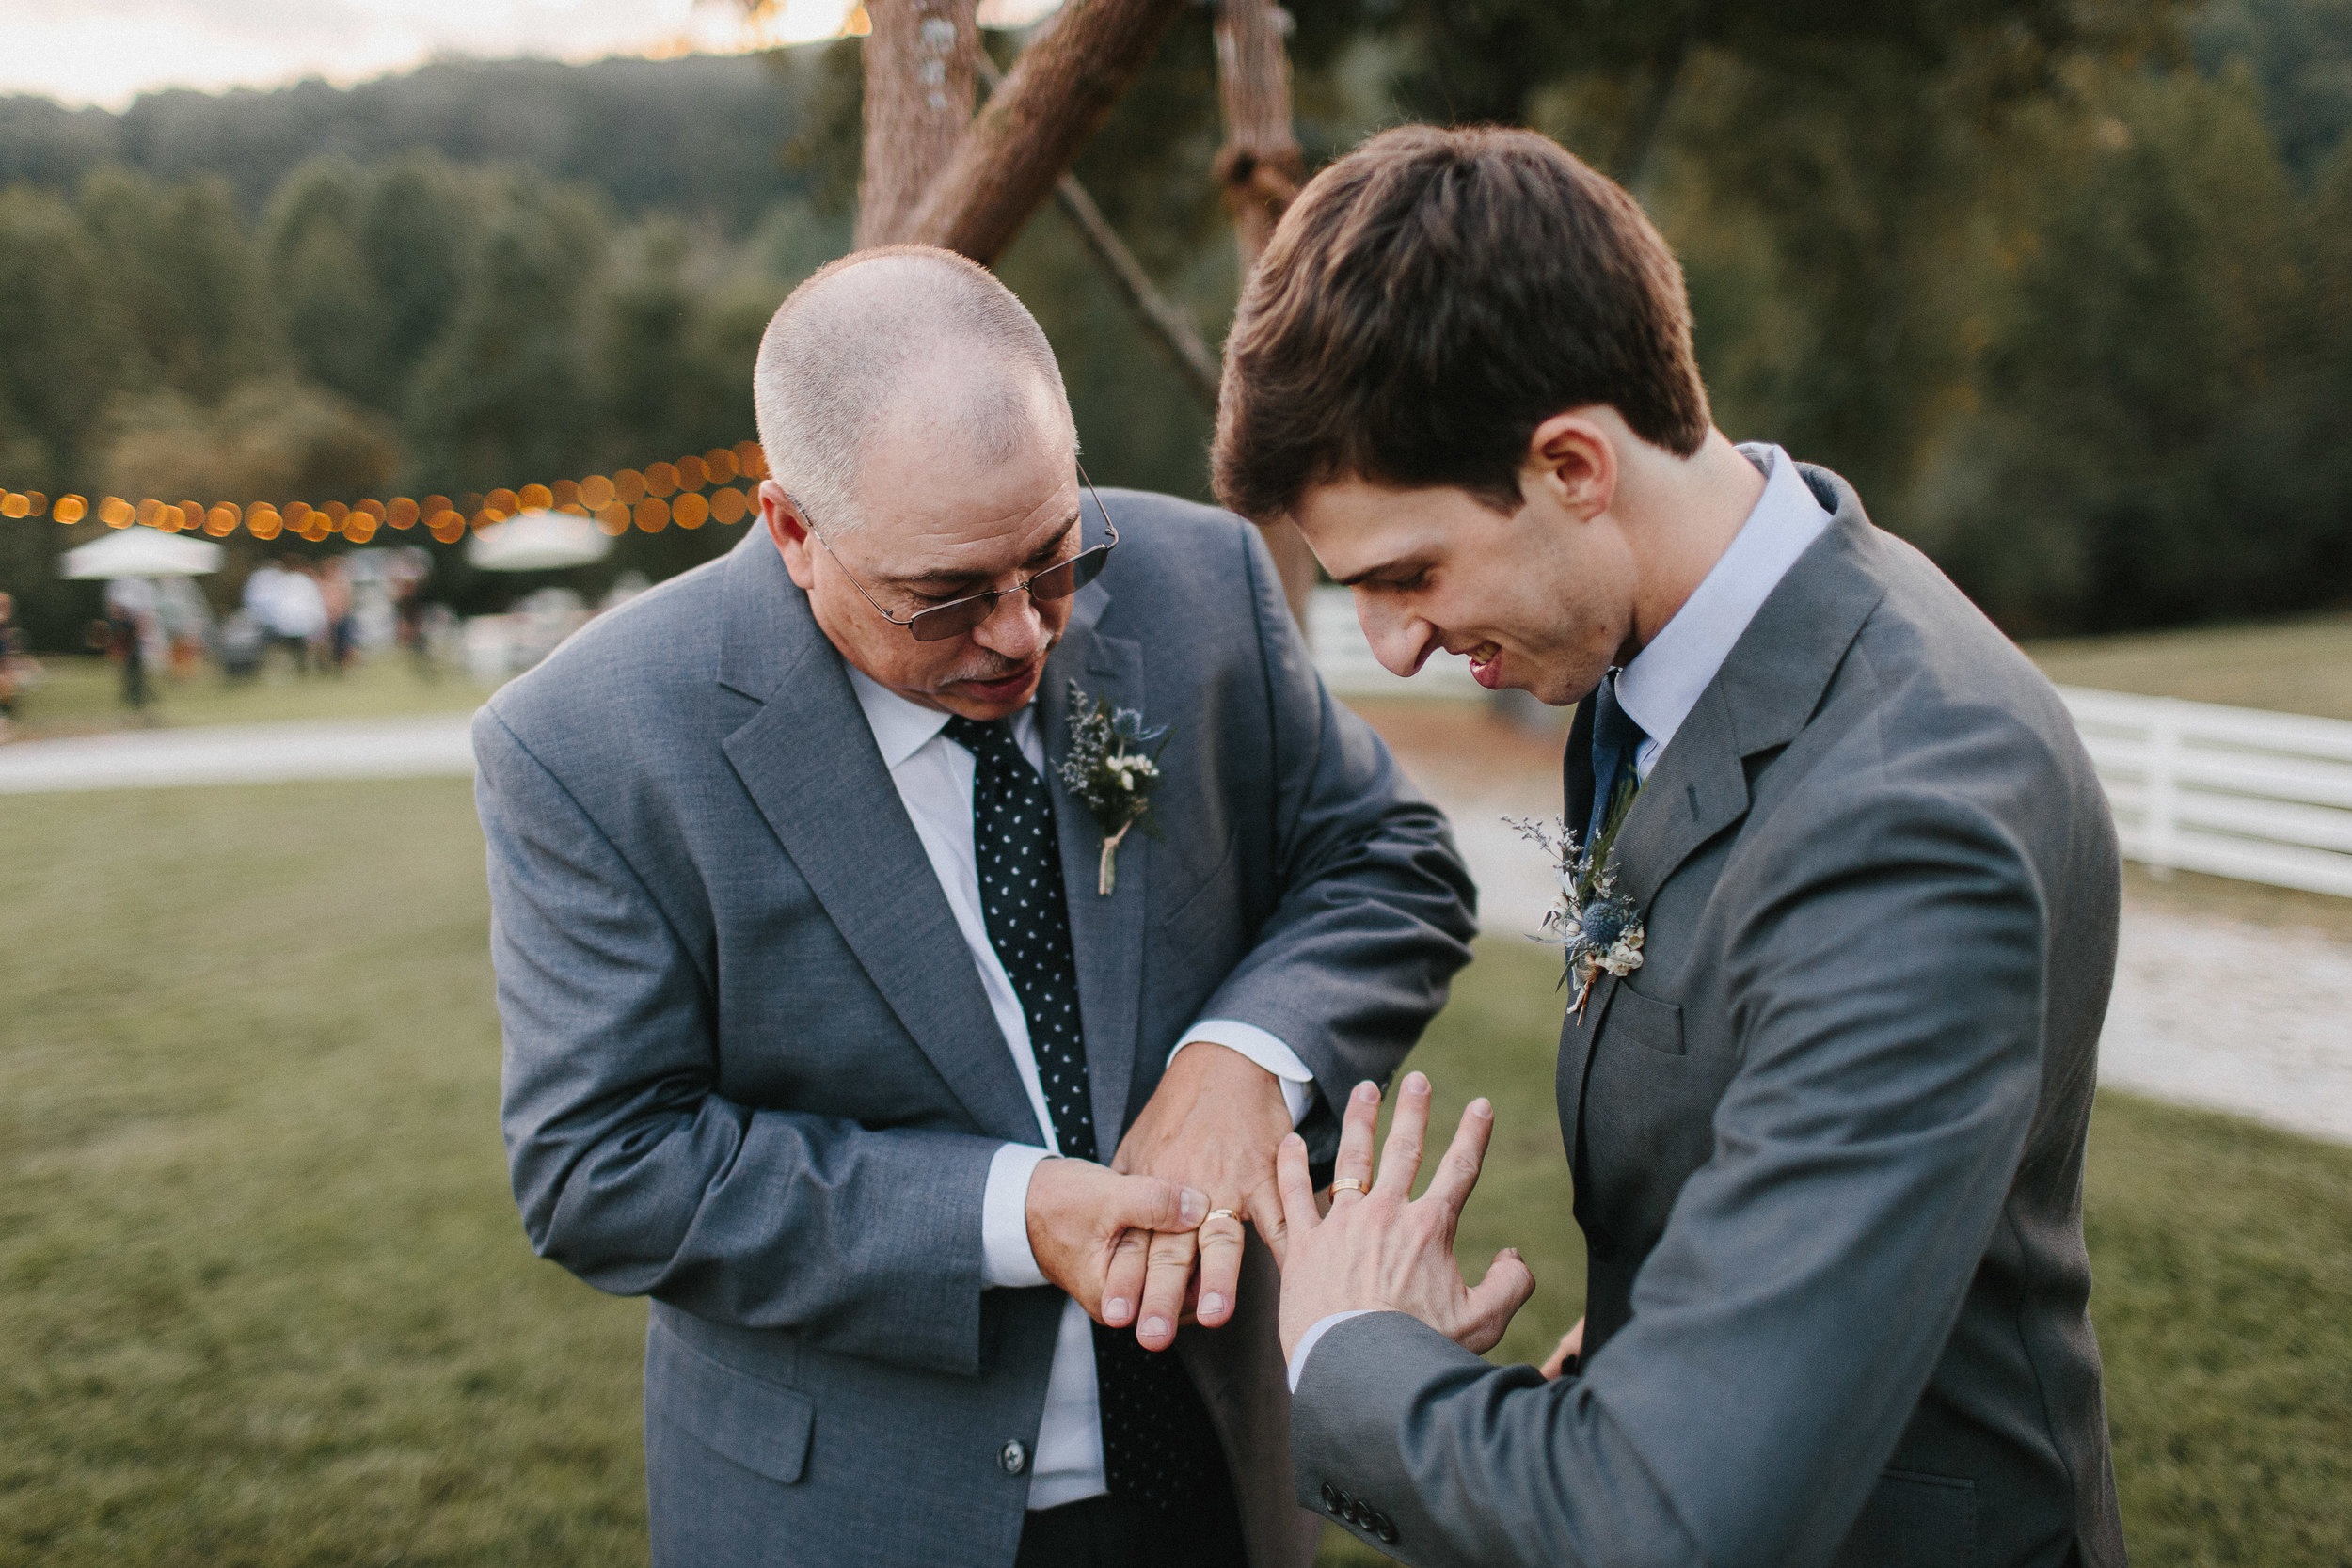 cleveland_georgia_mountain_laurel_farm_natural_classic_timeless_documentary_candid_wedding_emotional_photojournalism_river_west_1790.jpg